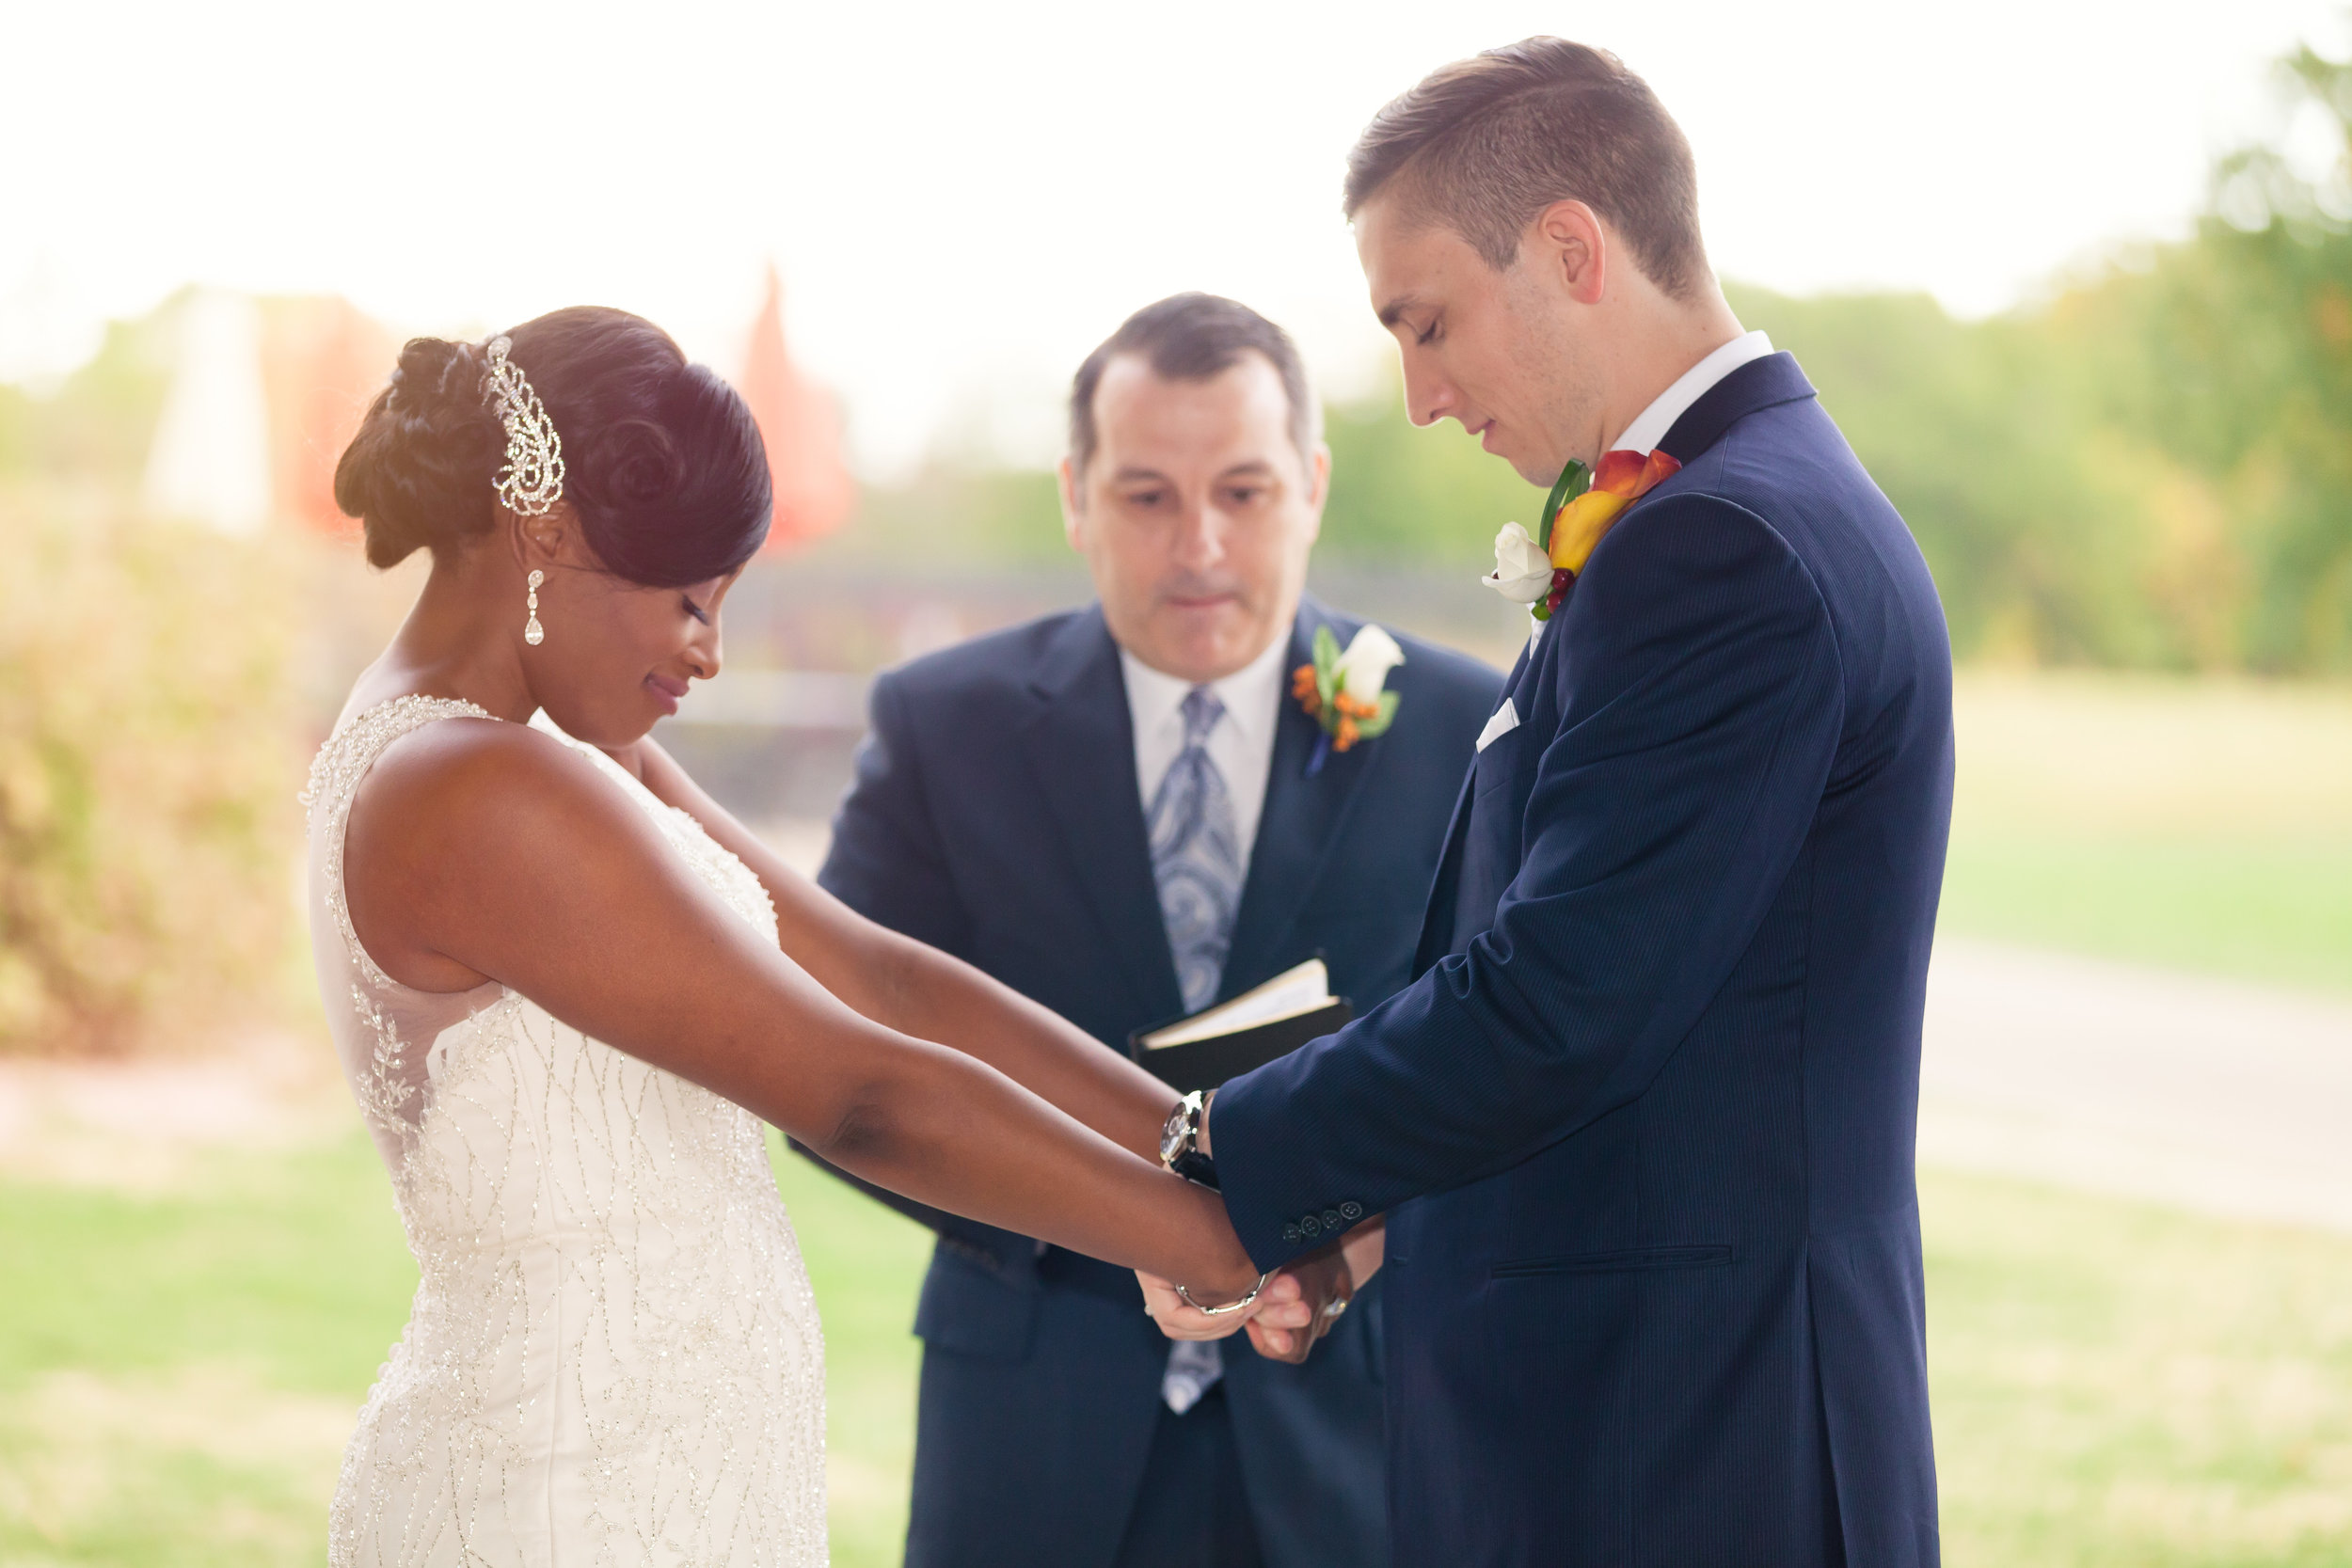 Both Brian and Marquita kept telling us how long they had waited for this day.